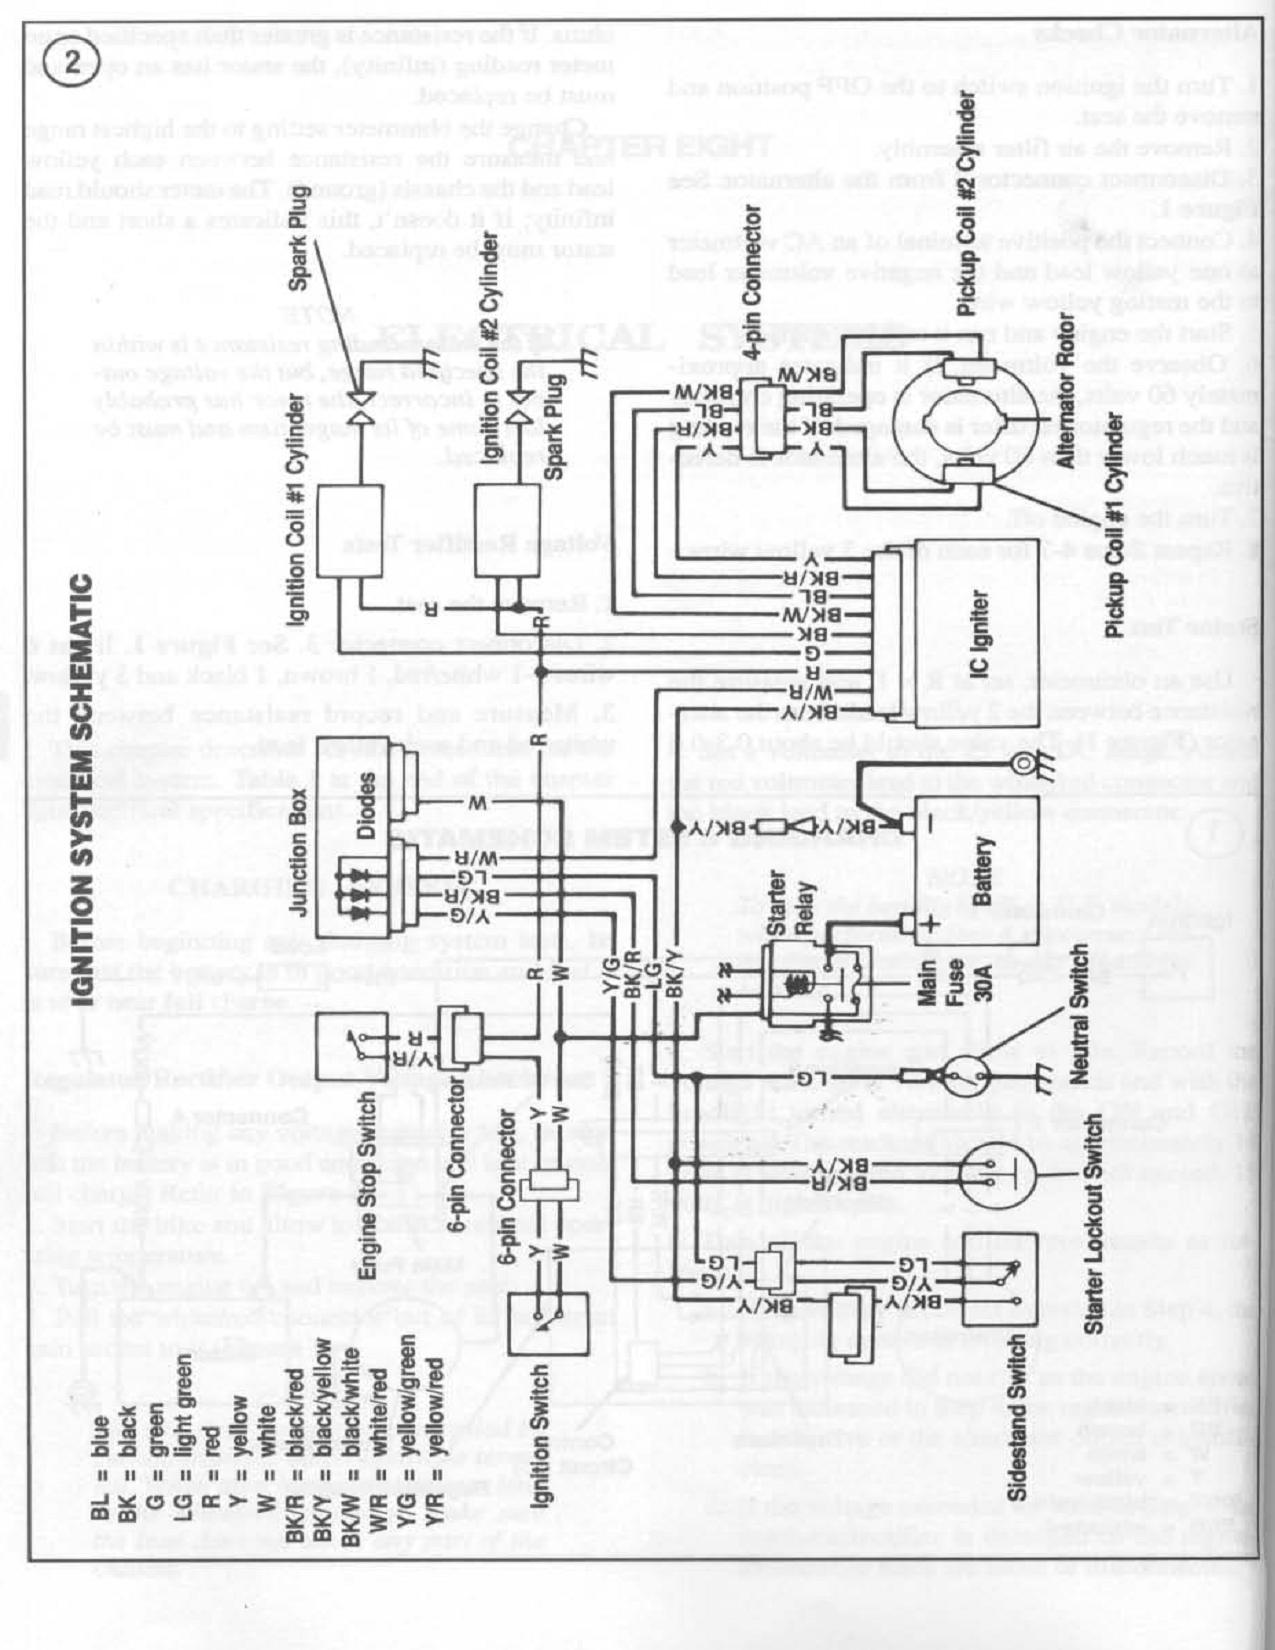 First Gen Ignition Wiring Diagram Ex 500 Com The Home Of The Kawasaki Ex500 Ninja 500r